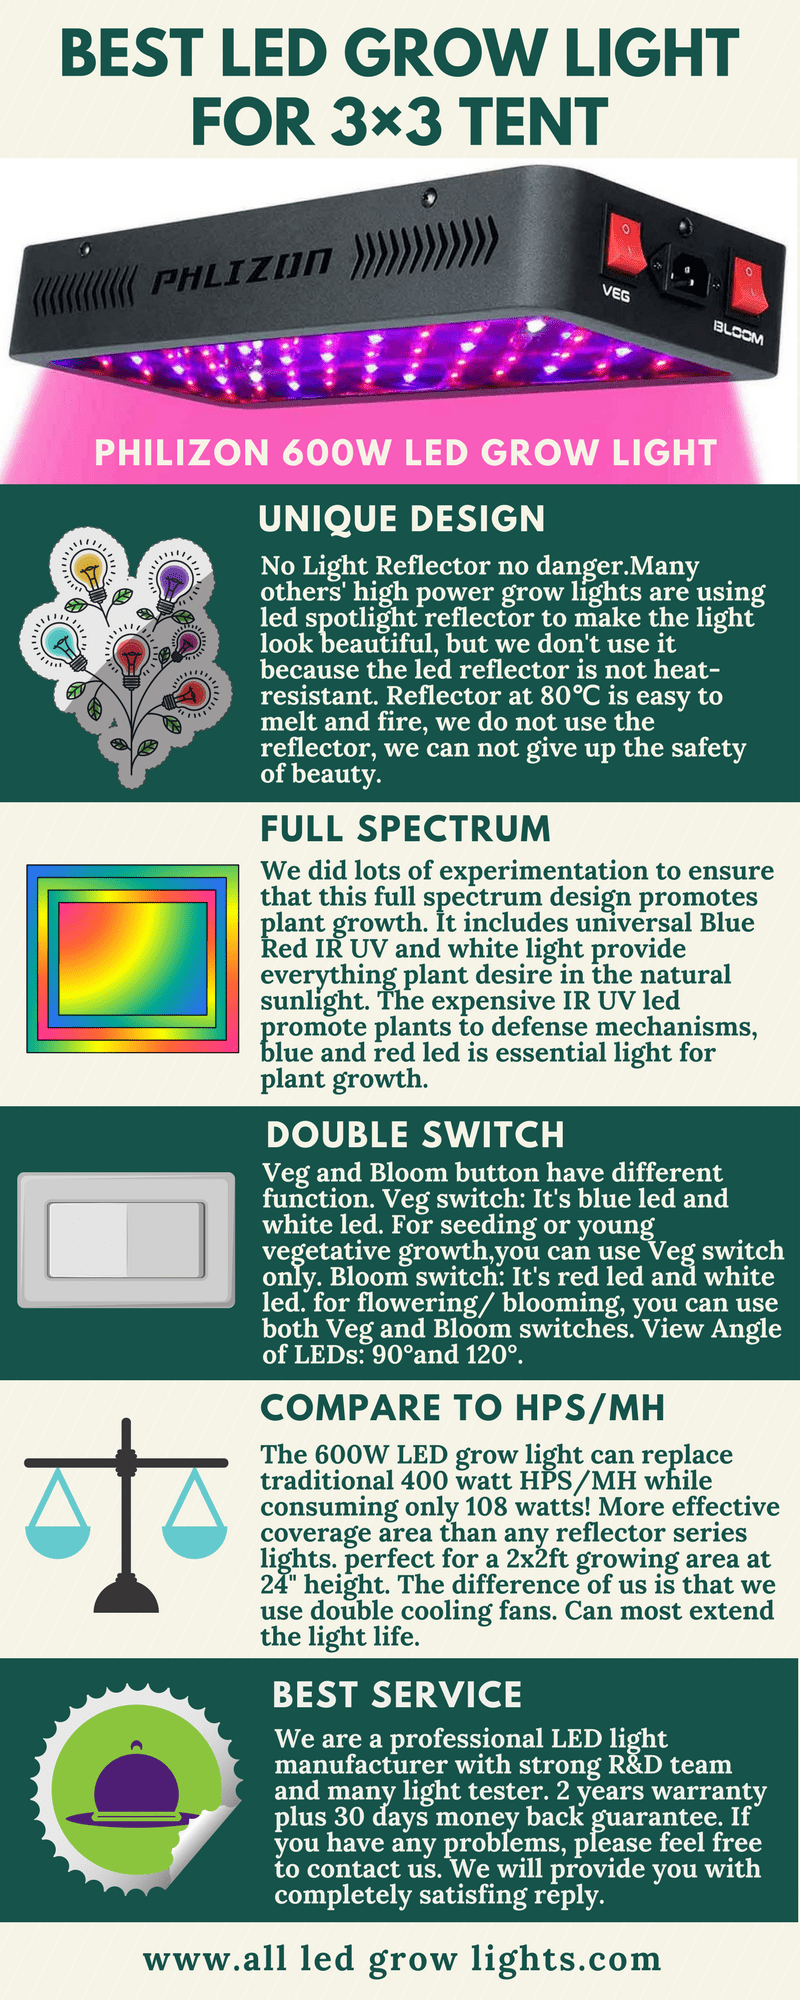 Led grow light for 3x3 grow tent infographic